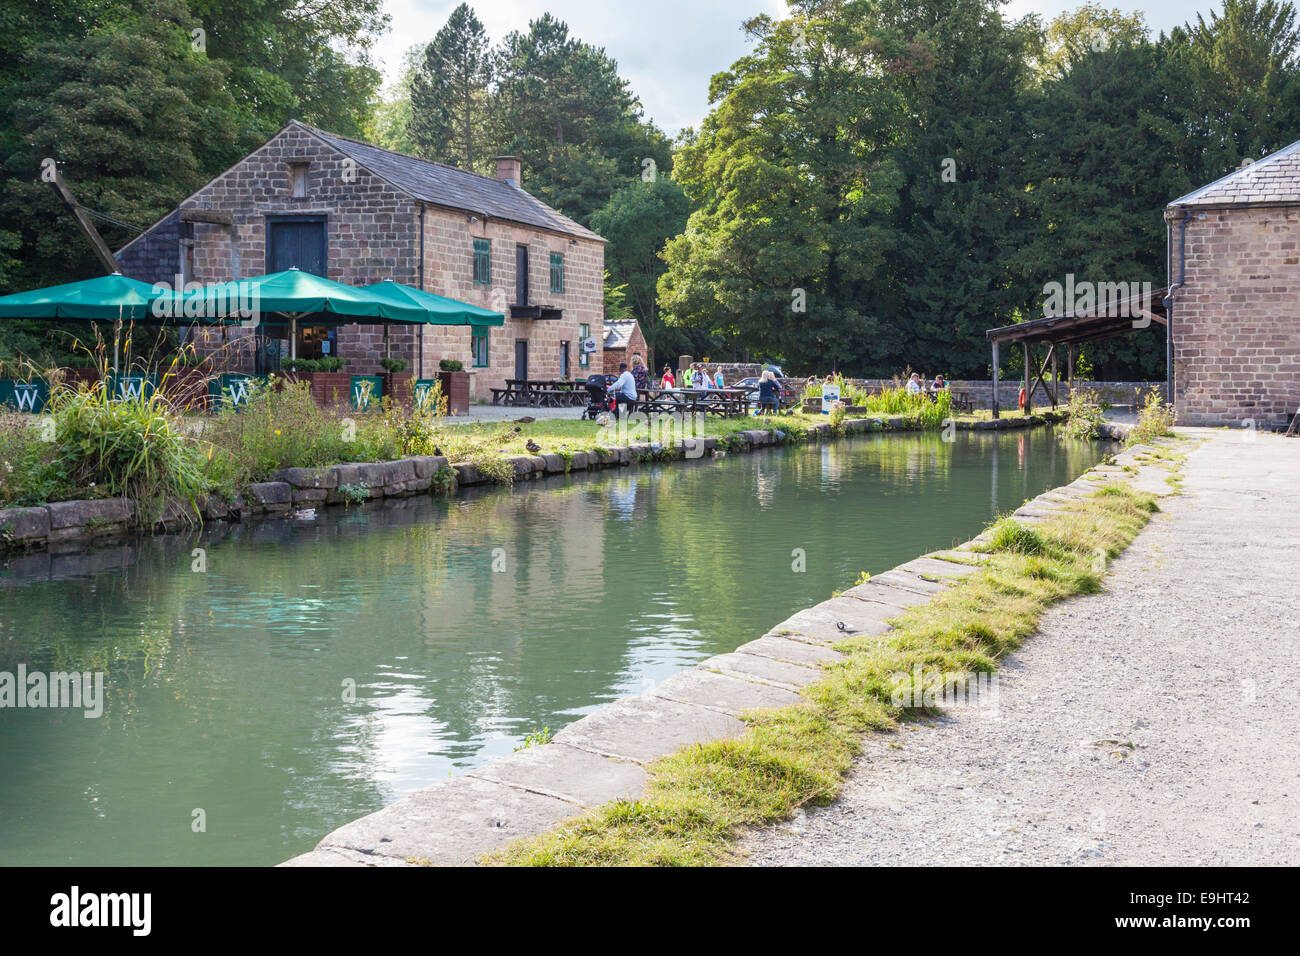 Cafe at the end of the Cromford Canal in Summer, Cromford, Derbyshire, England, UK - Stock Image